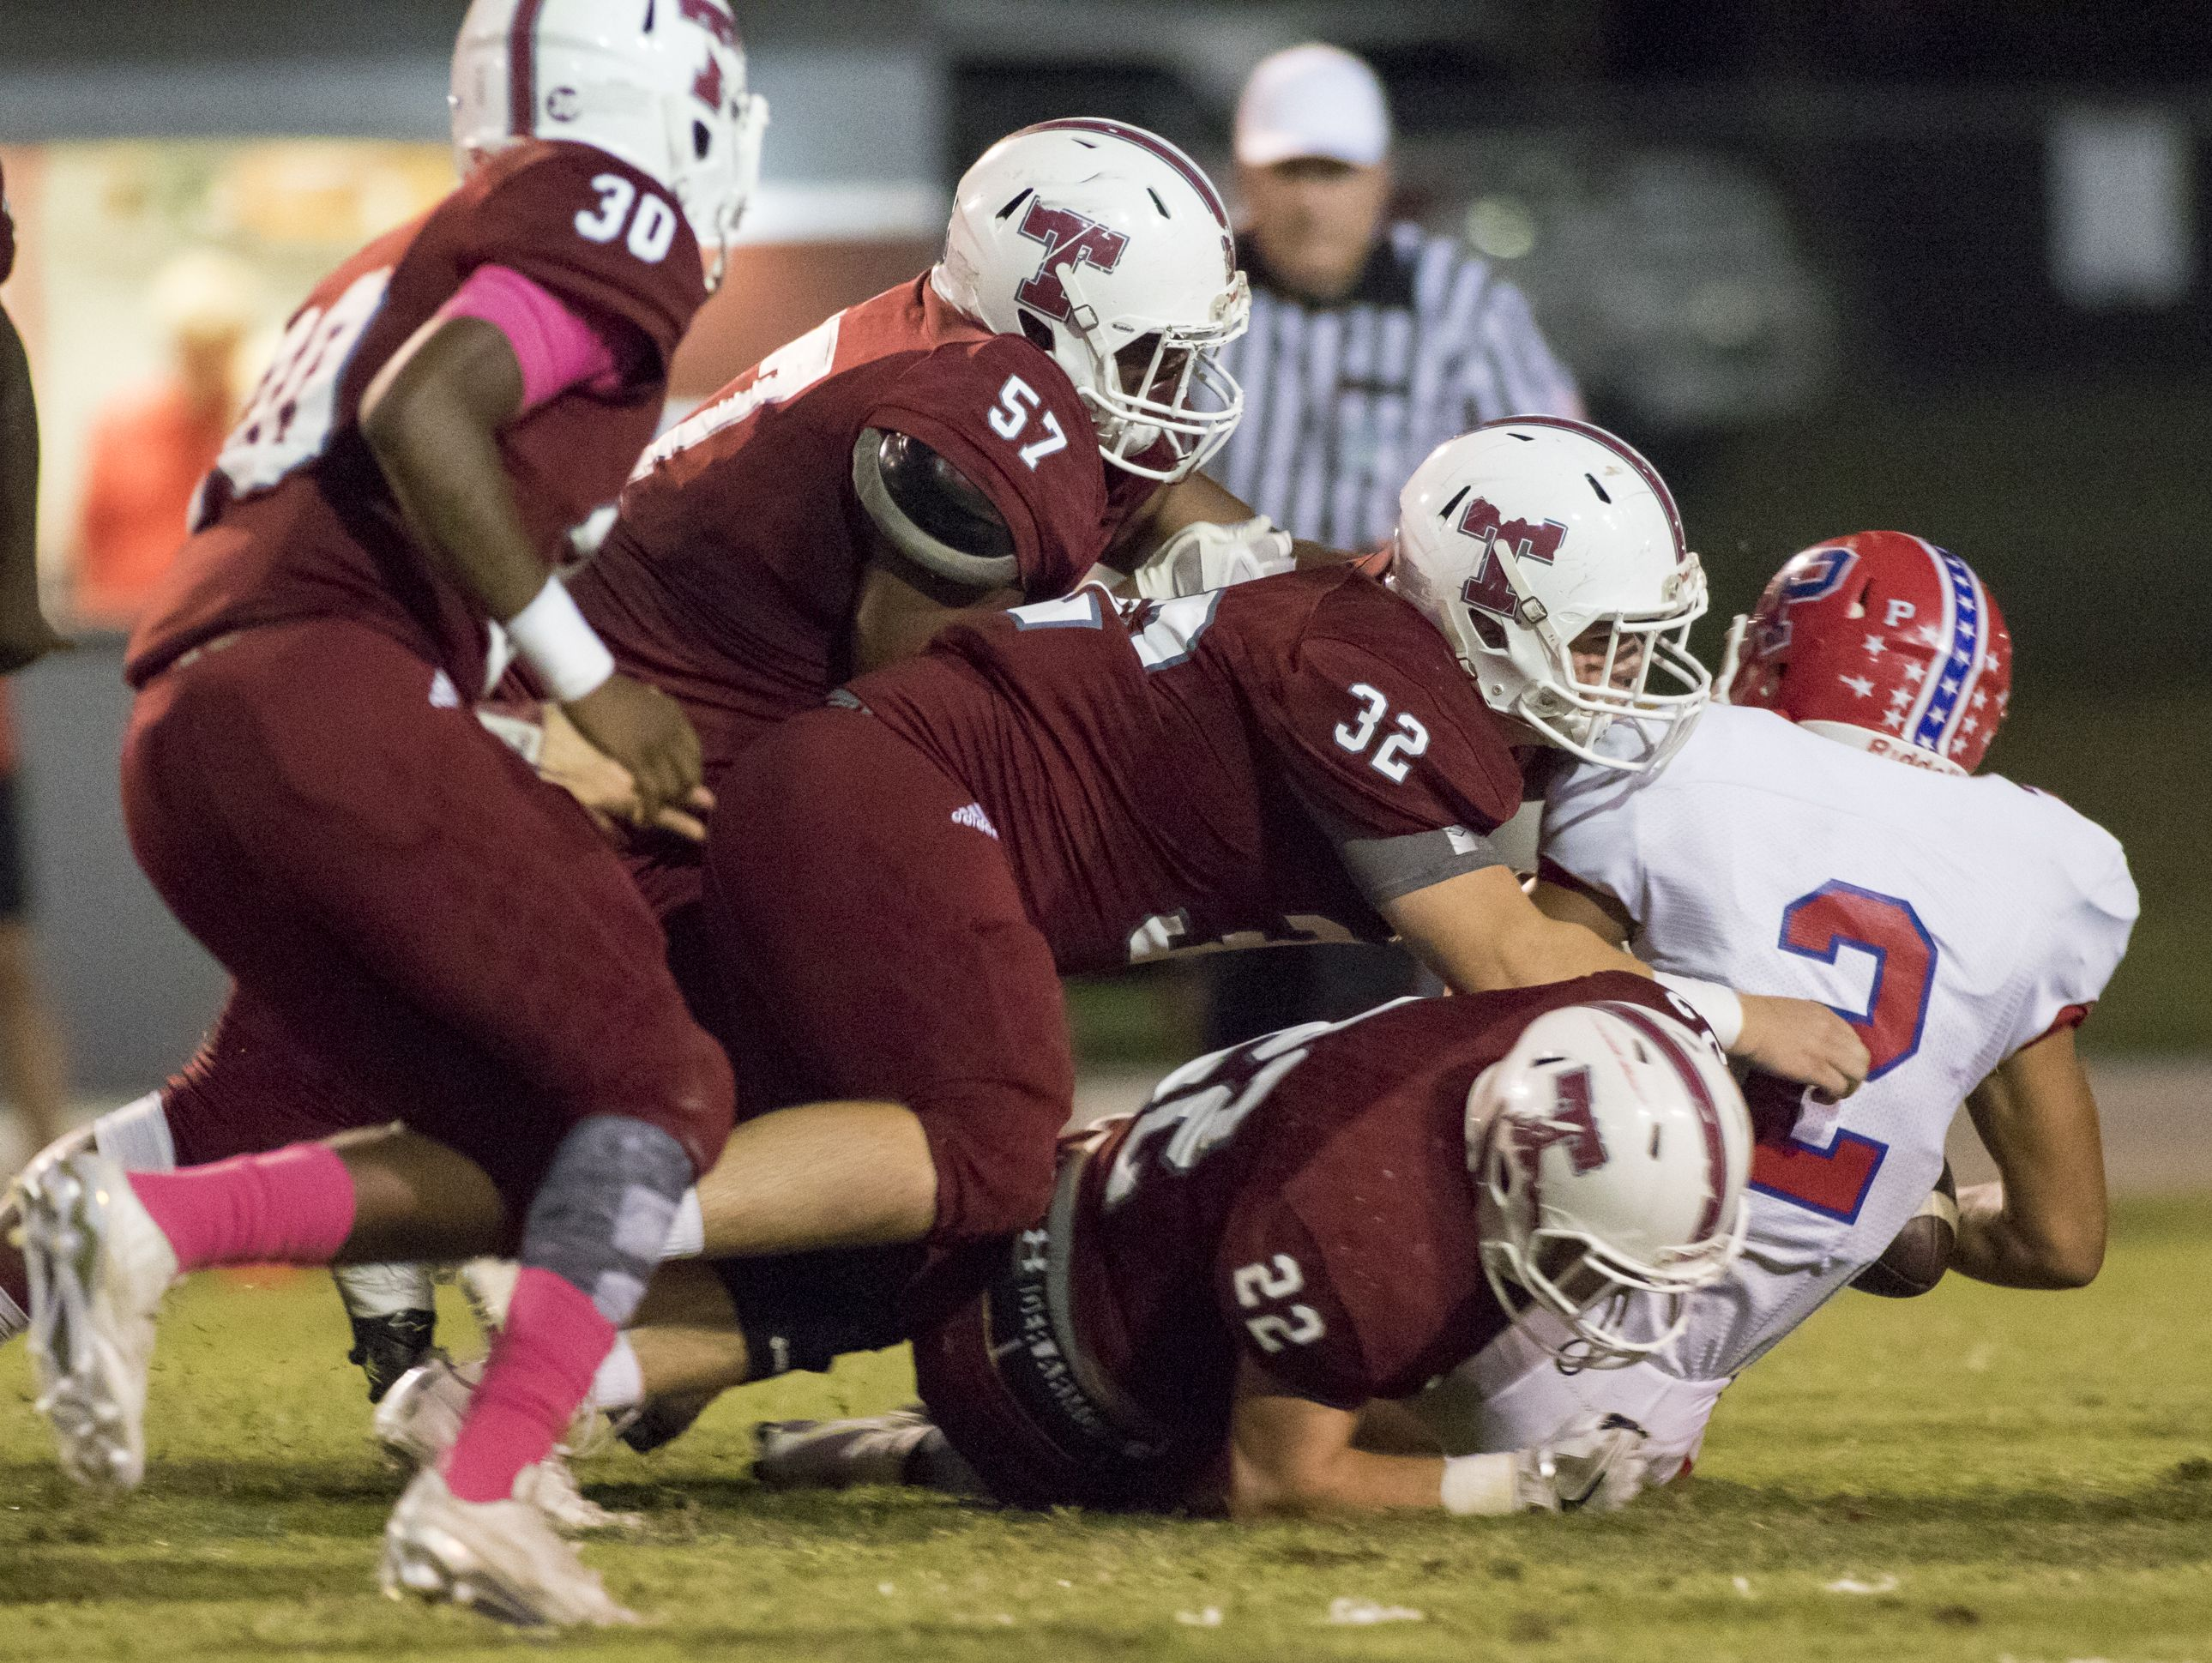 Quarterback Damean Bivins (2) is taken down by the Tate defense during the Pace vs Tate football game at Tate High School on Friday, October 7, 2016.